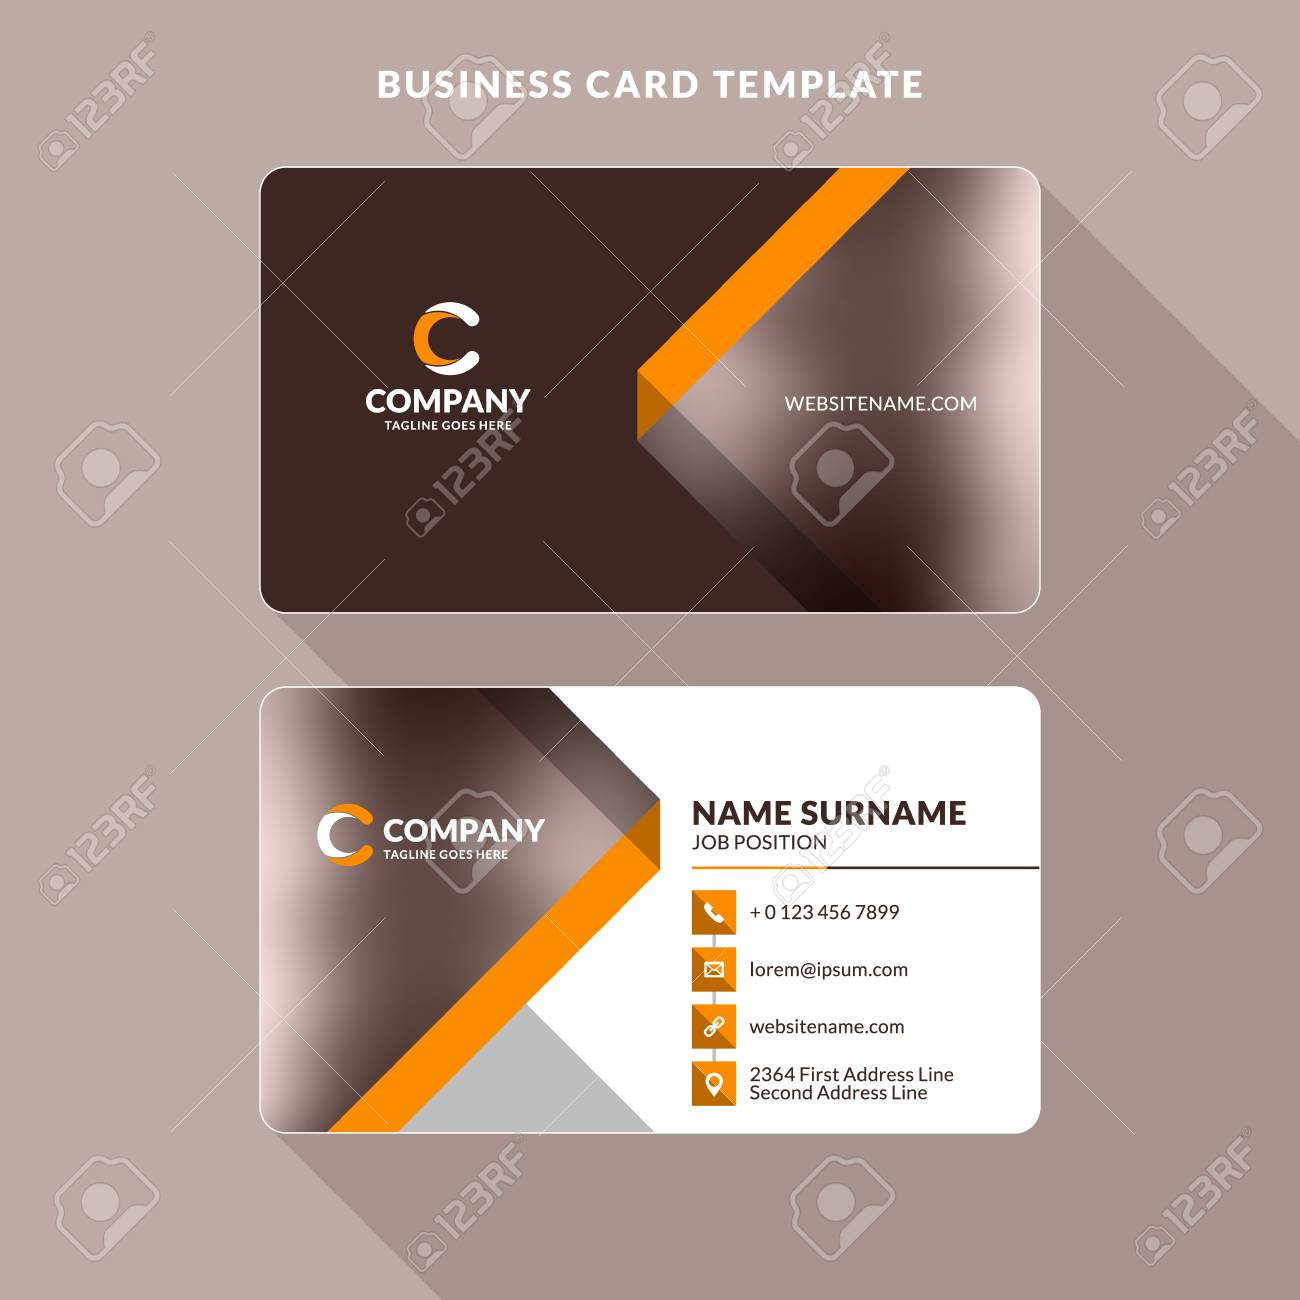 Creative And Clean Doublesided Business Card Template Orange - Two sided business card template